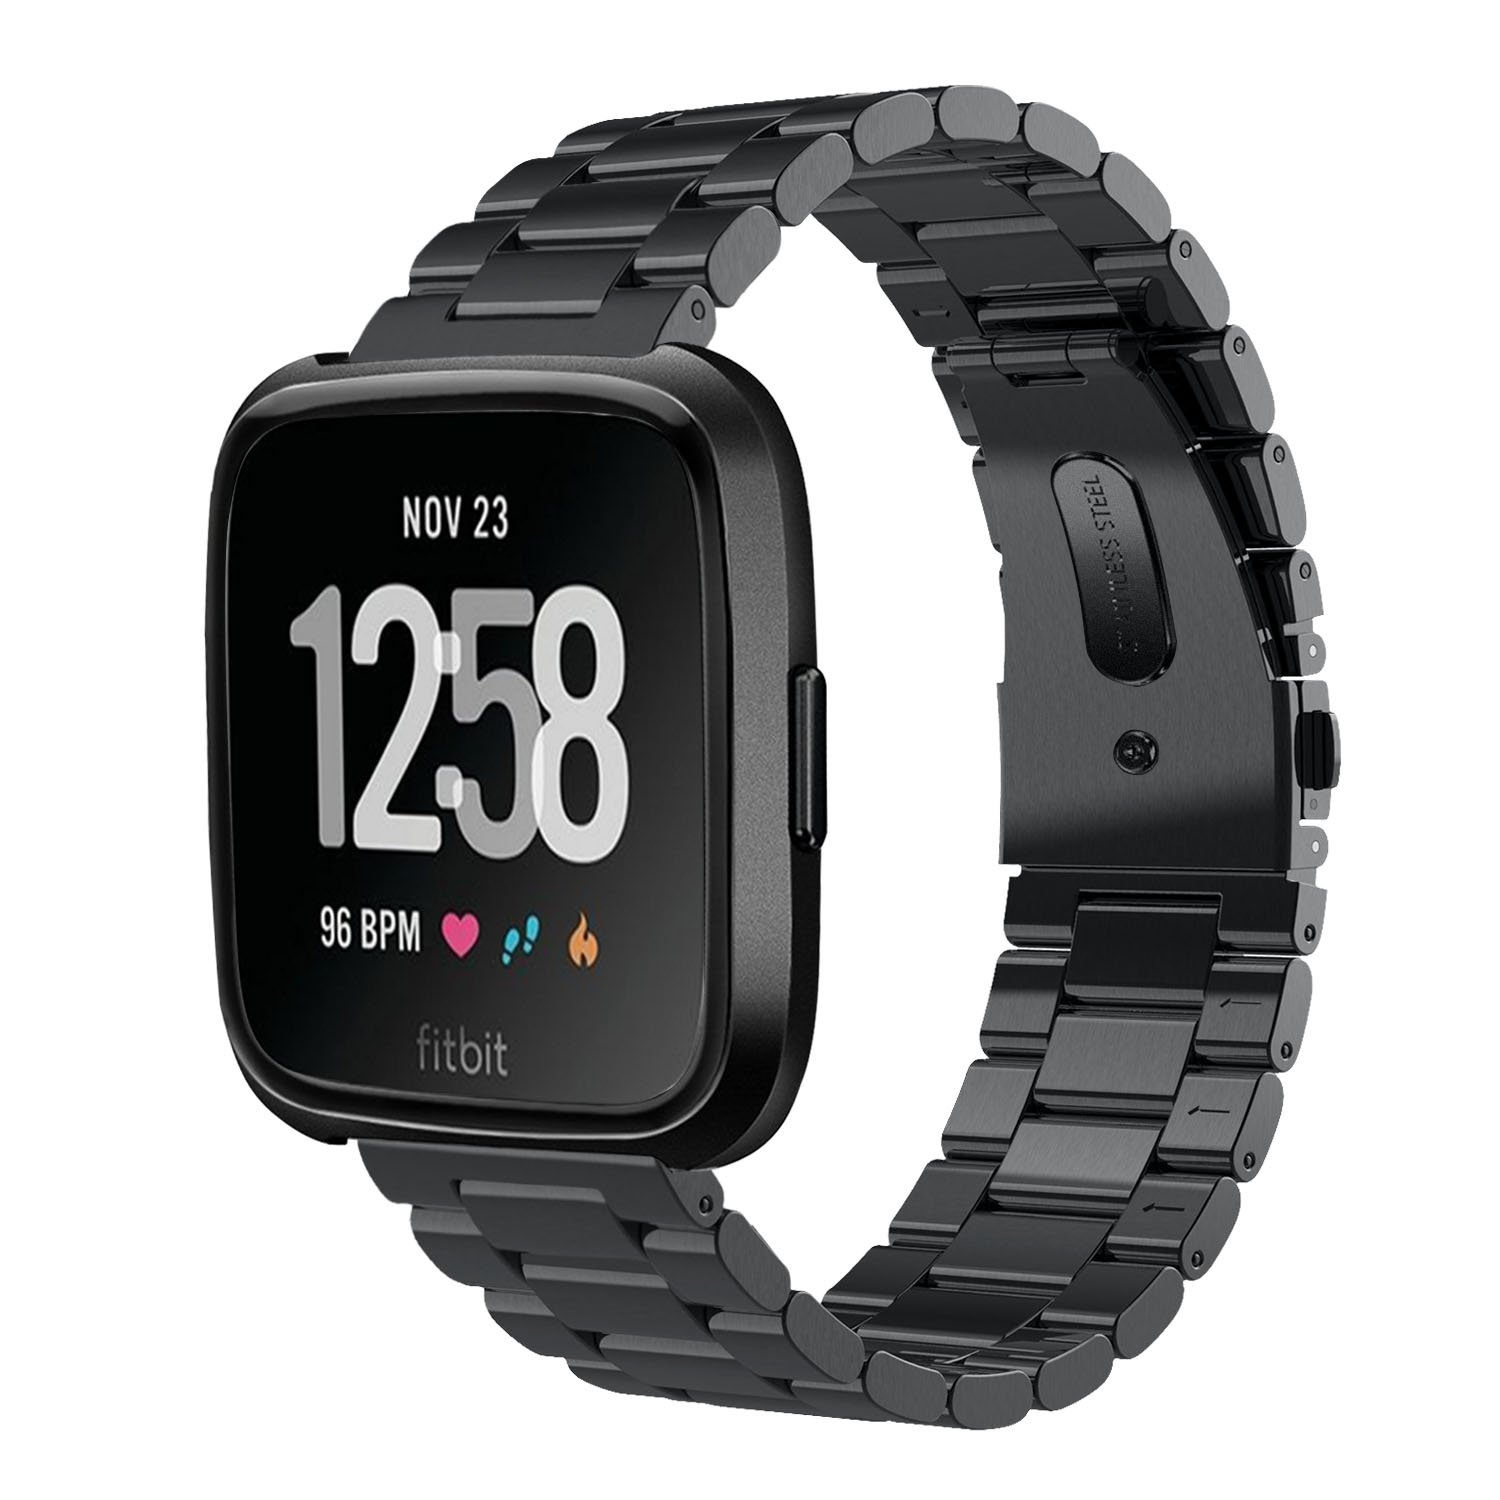 VIGOSS Metal Band Compatible with Fitbit Versa Bands Men Black Solid Stainless Steel Versa Special Edition Strap Business Bracelet for Fitbit Versa/Special Edition/Lite Edition Smartwatch by VIGOSS